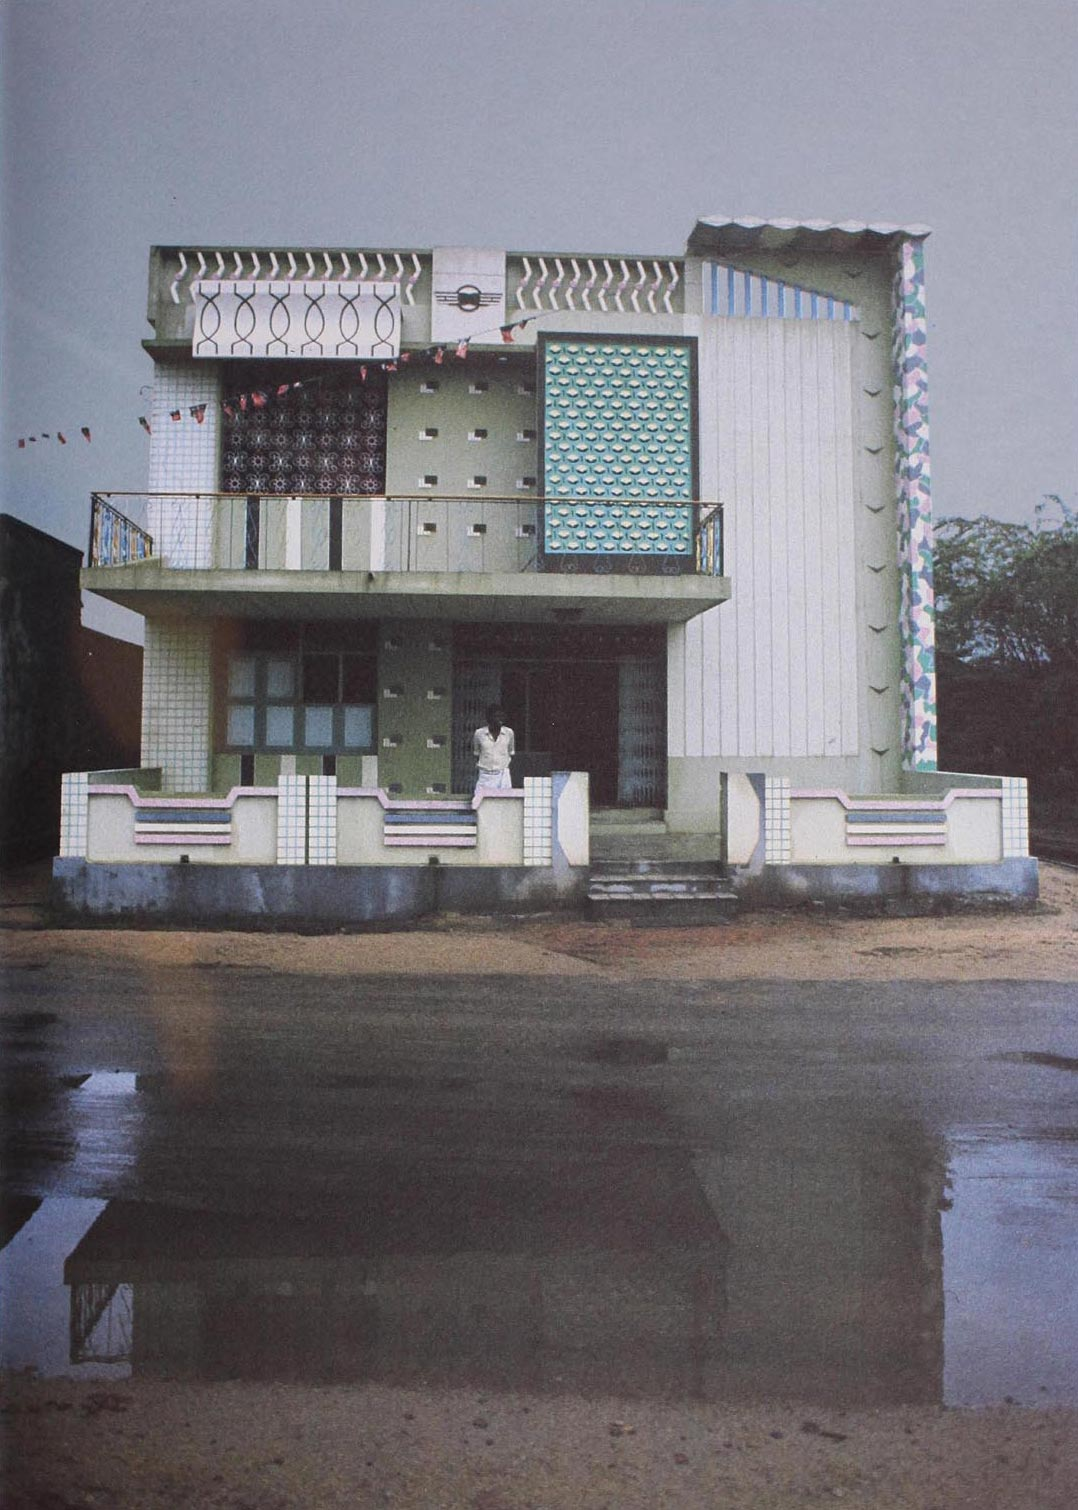 Kanchipuram, India, 1977. Photograph by E.Sottsass